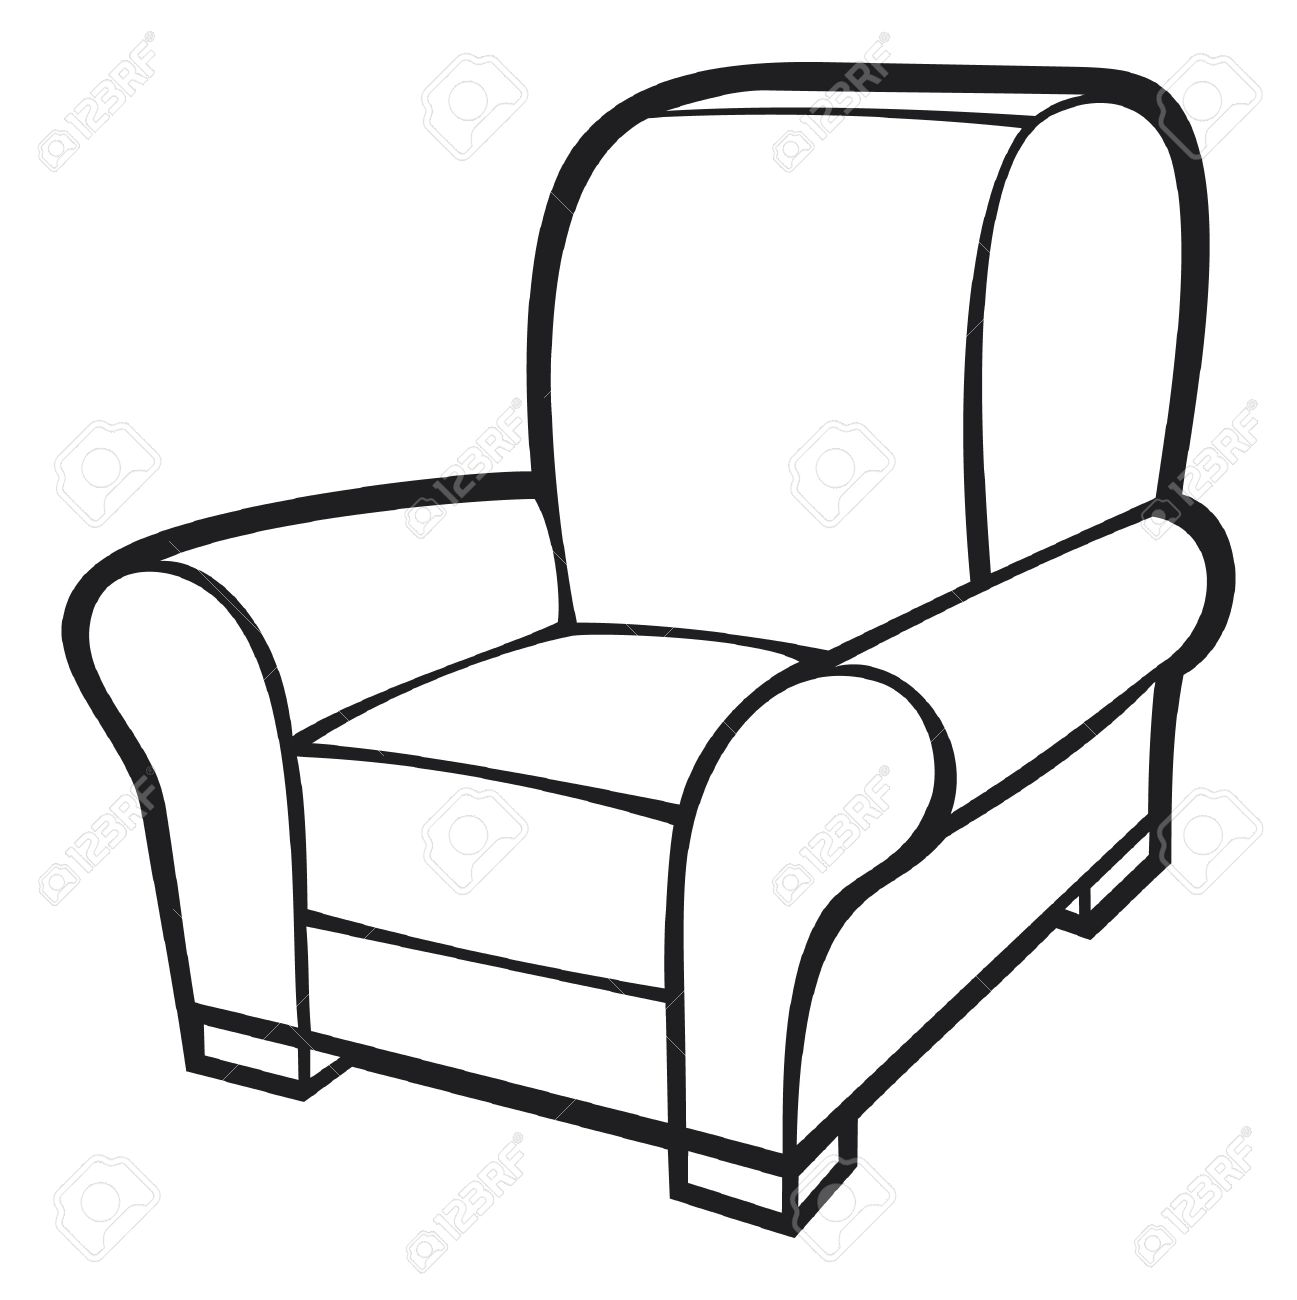 Sofa Chair Drawing At Getdrawings